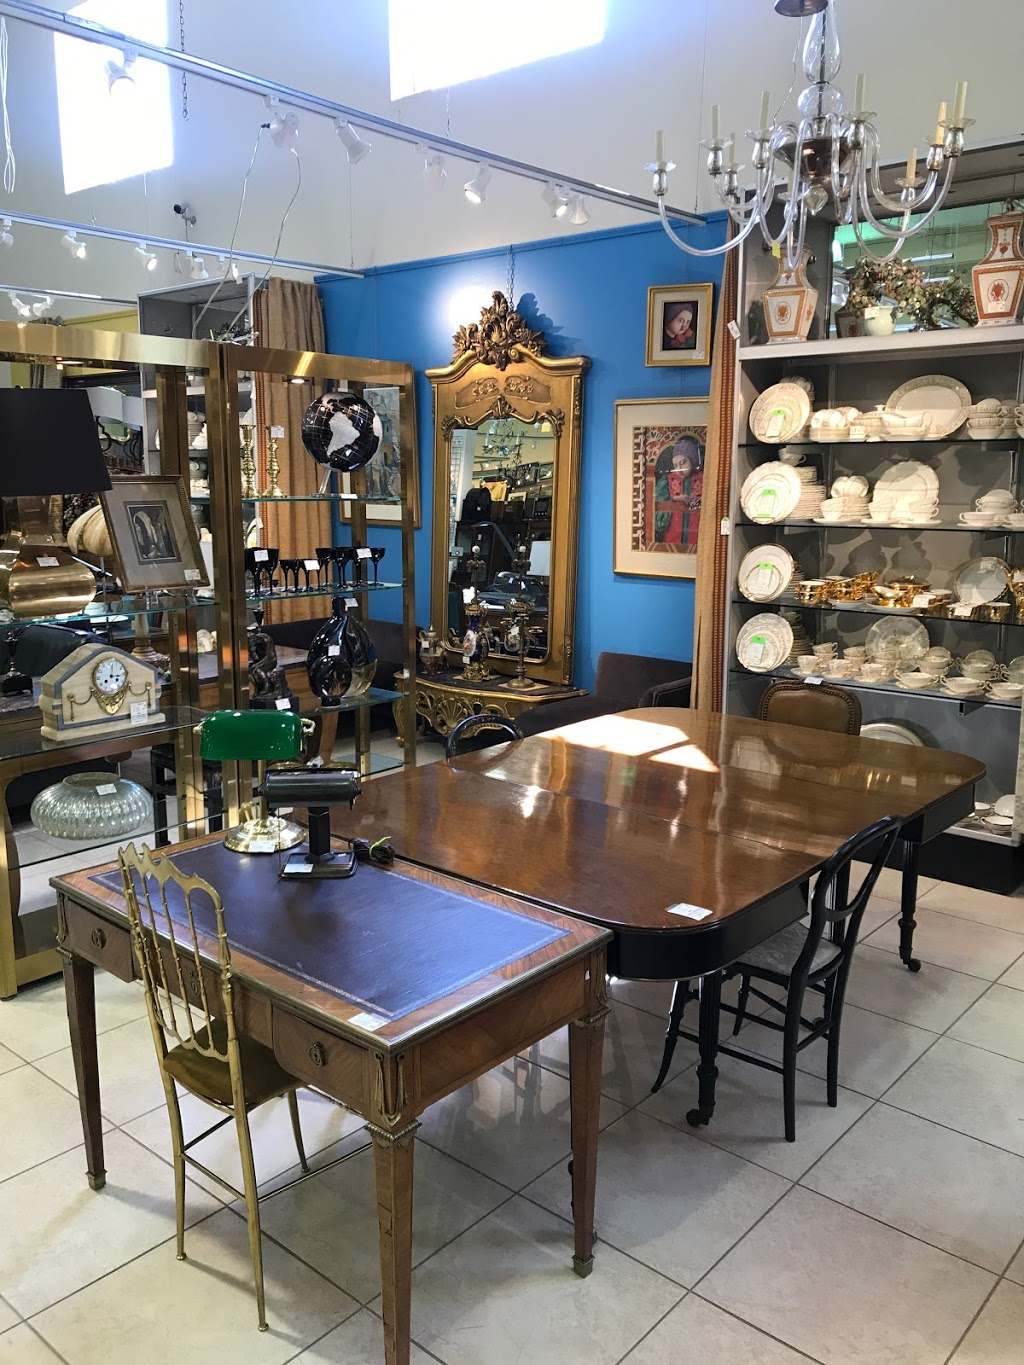 Around The Block | furniture store | 150 Lesmill Rd, North York, ON M3B 2T5, Canada | 4165461760 OR +1 416-546-1760